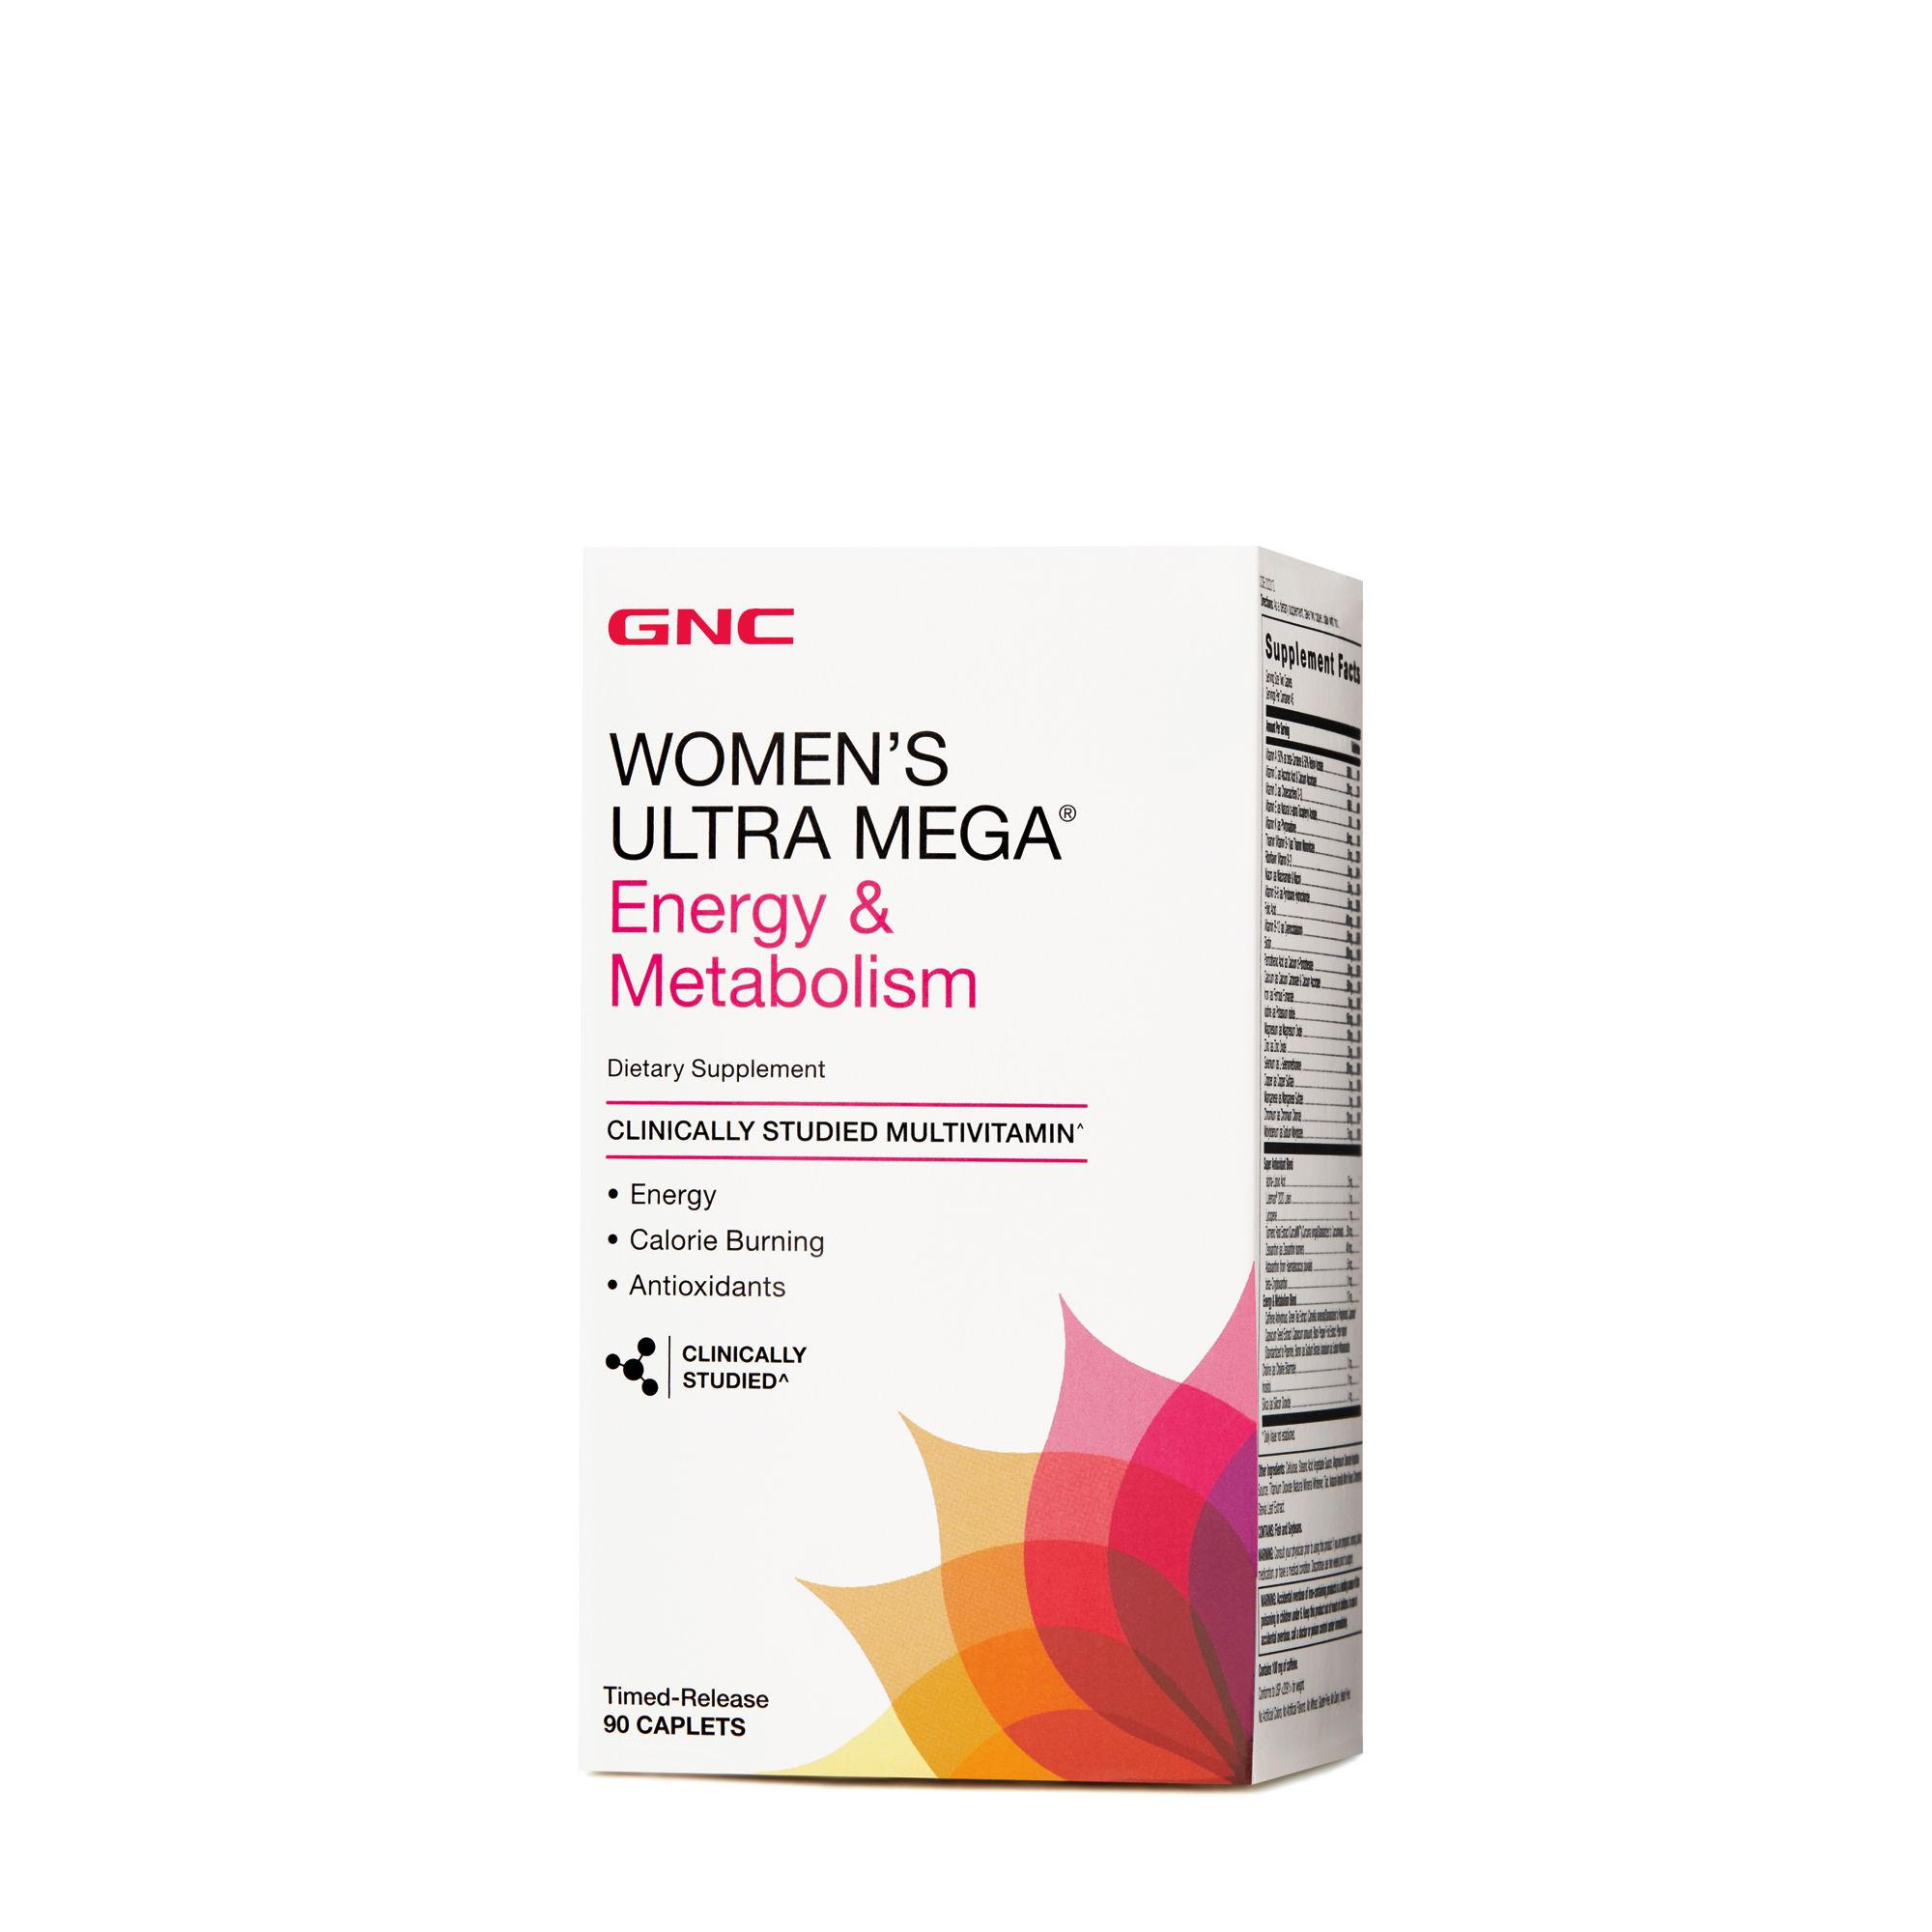 Gnc Womens Ultra Mega Energy & Metabolism By Gnc.